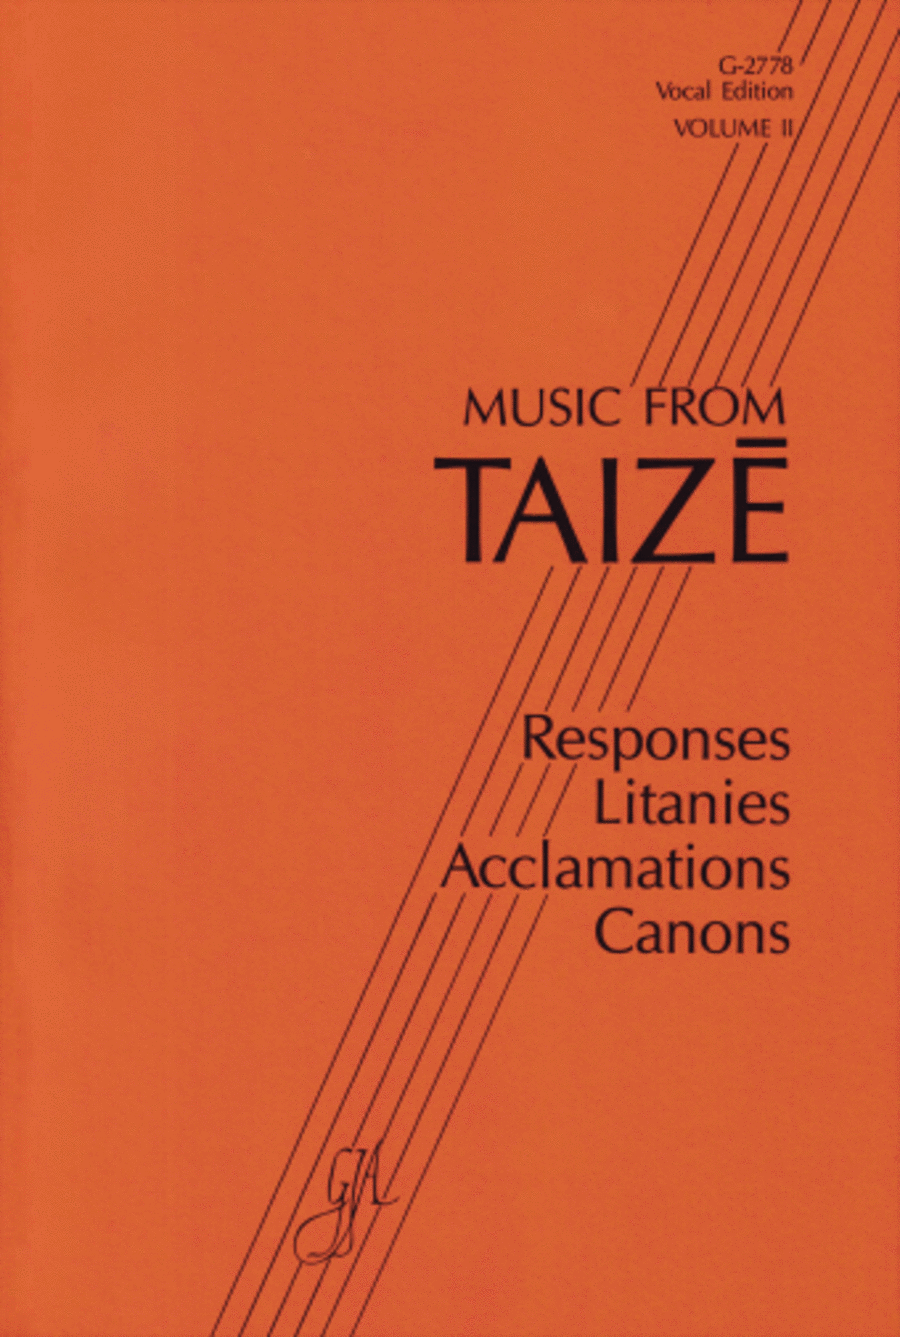 Music from Taize - Volume II - Spiral